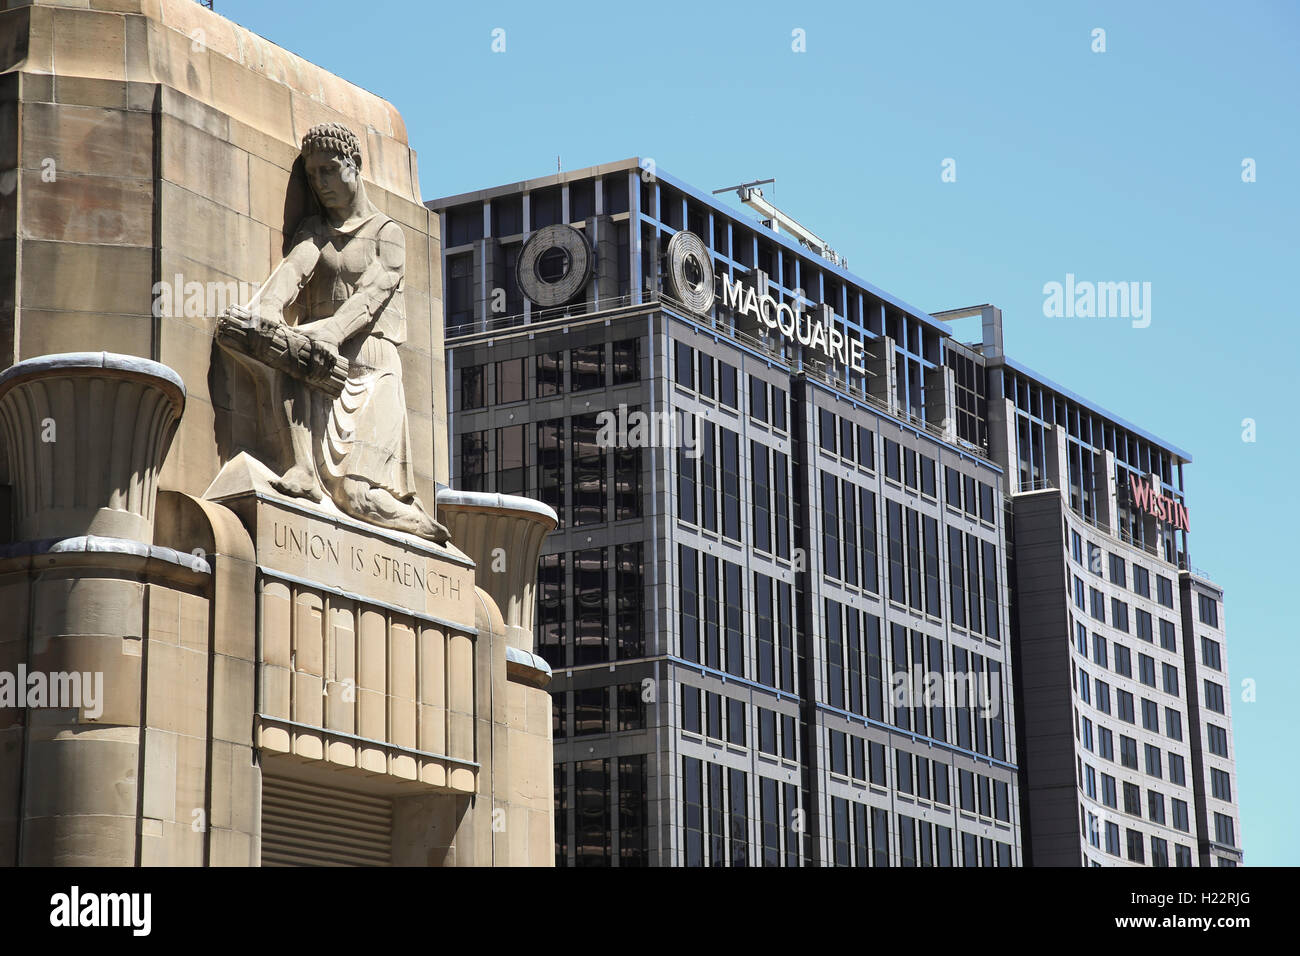 'Union is strength' former MLC building Martin Place Sydney Australia - Stock Image